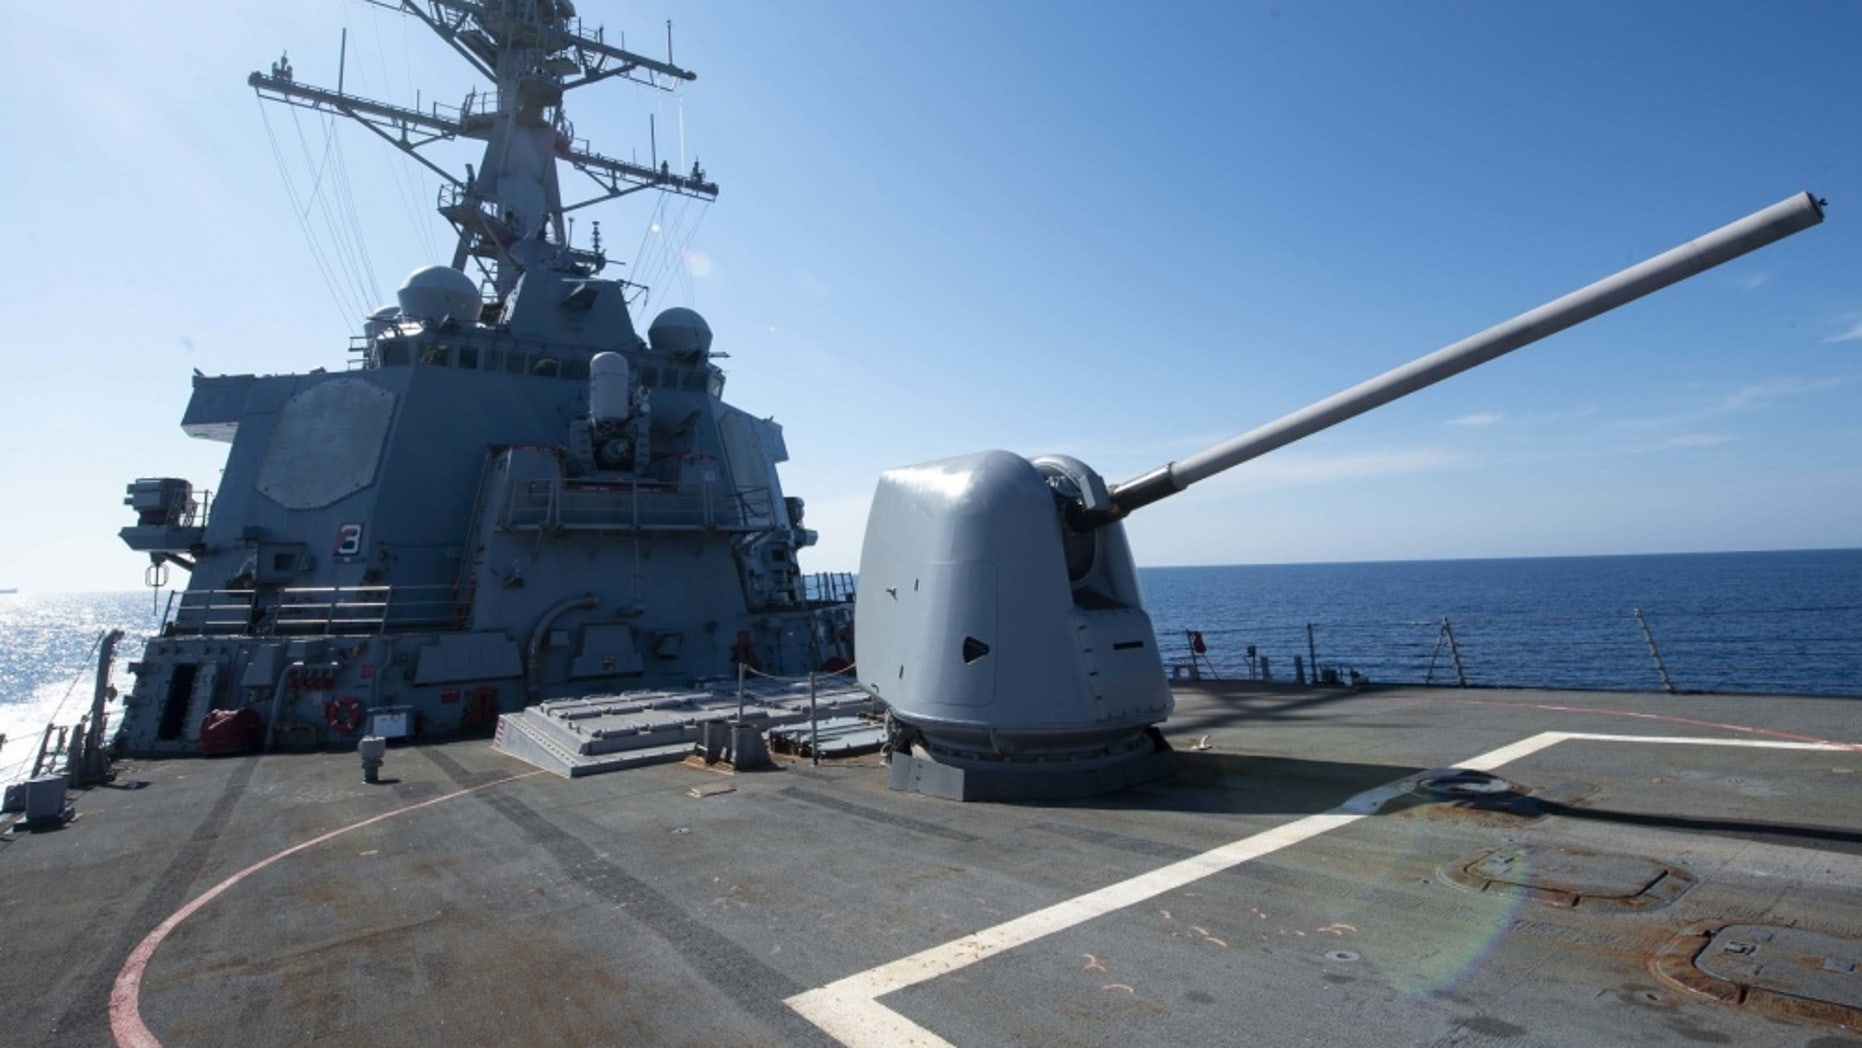 The Arleigh Burke-class guided-missile destroyer USS Arleigh Burke (DDG 51) transits a Mediterranean Sea Sept. 22, 2018 -file photo.